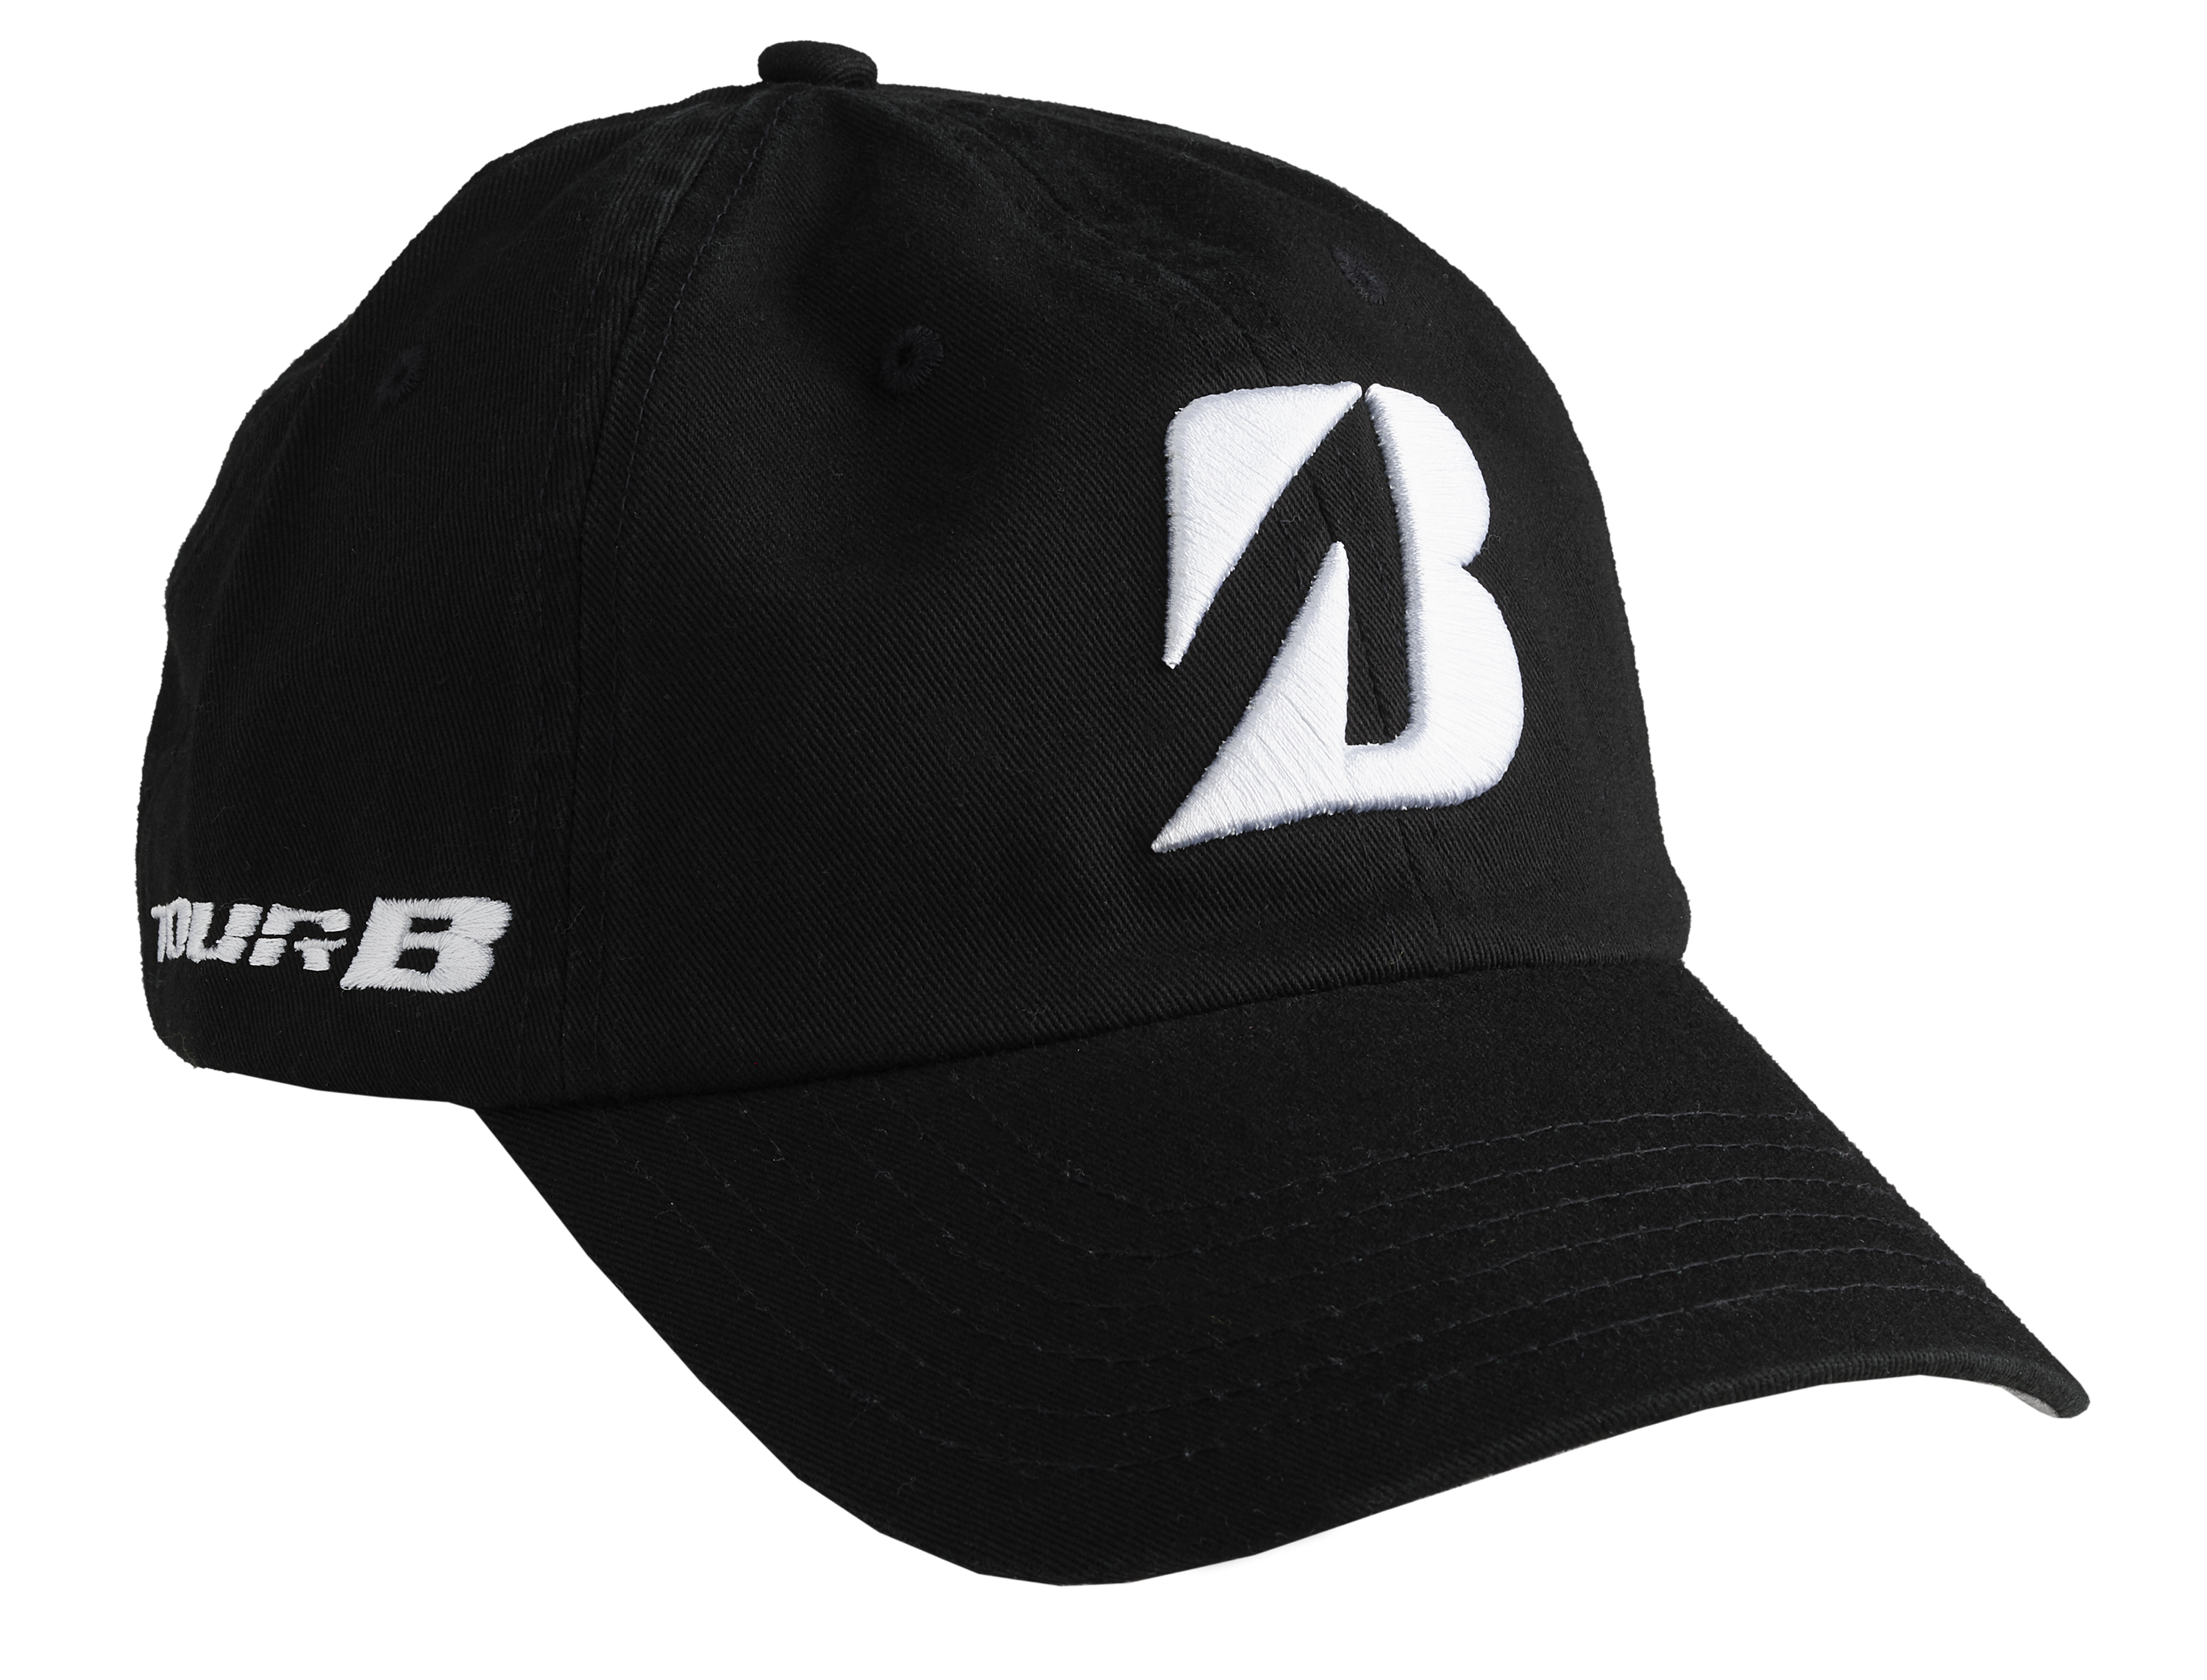 558870e0509dc0 Bridgestone Headwear - Golf Hats, Golf Caps and Golf Visors